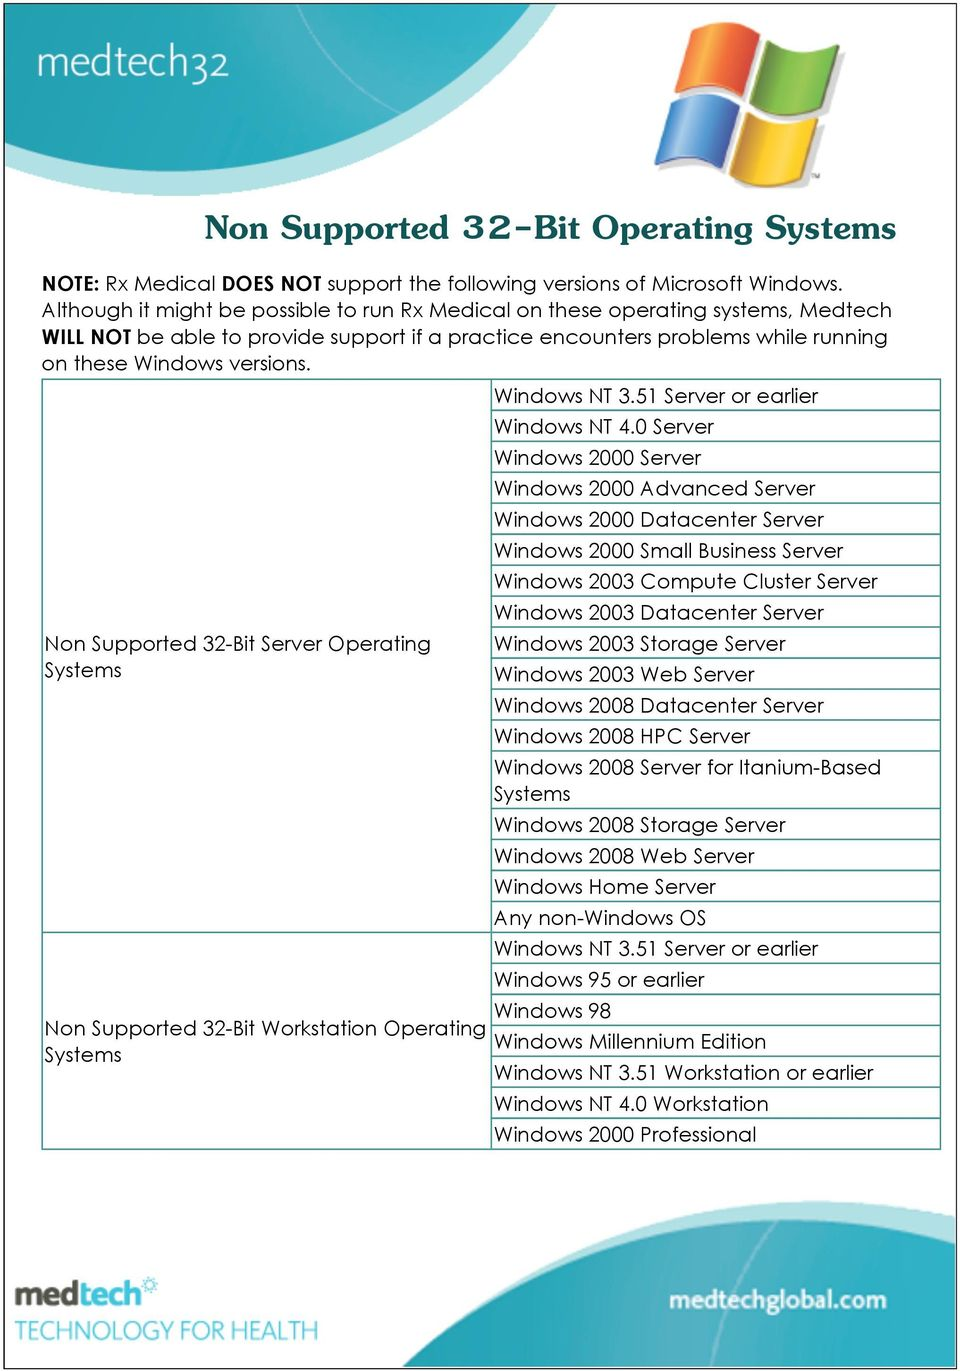 Non Supported 32-Bit Server Operating Systems Non Supported 32-Bit Workstation Operating Systems Windows NT 3.51 Server or earlier Windows NT 4.